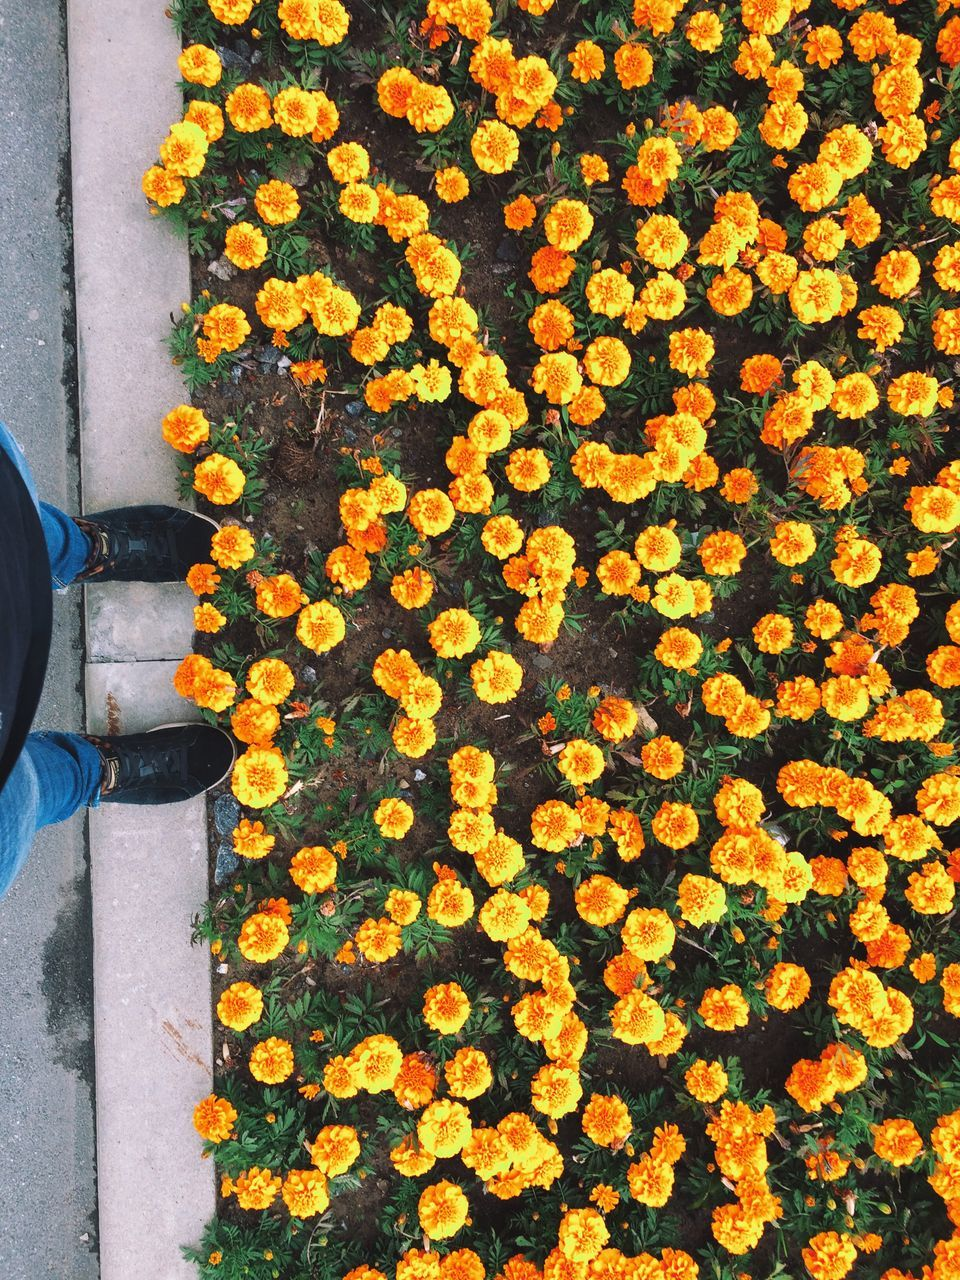 High Angle View Of Yellow Flowers Blooming Outdoors